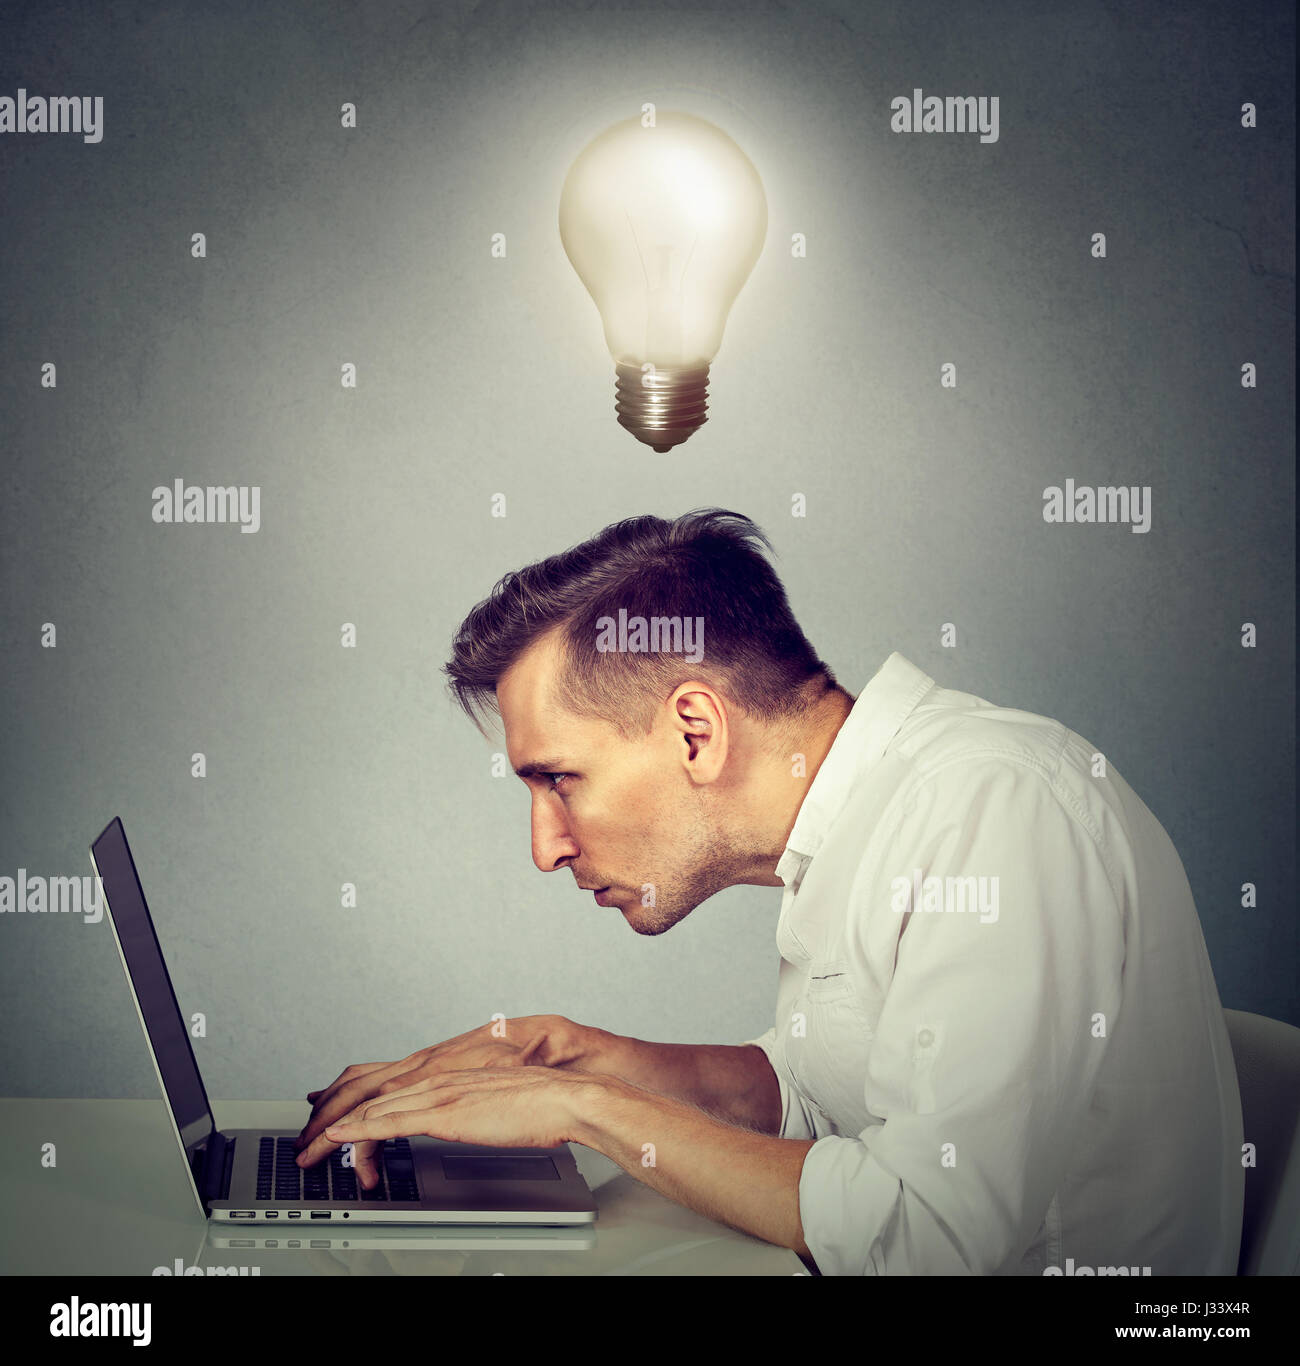 Side profile young man working on computer sitting at desk with light bulb over his head isolated on gray wall background. - Stock Image